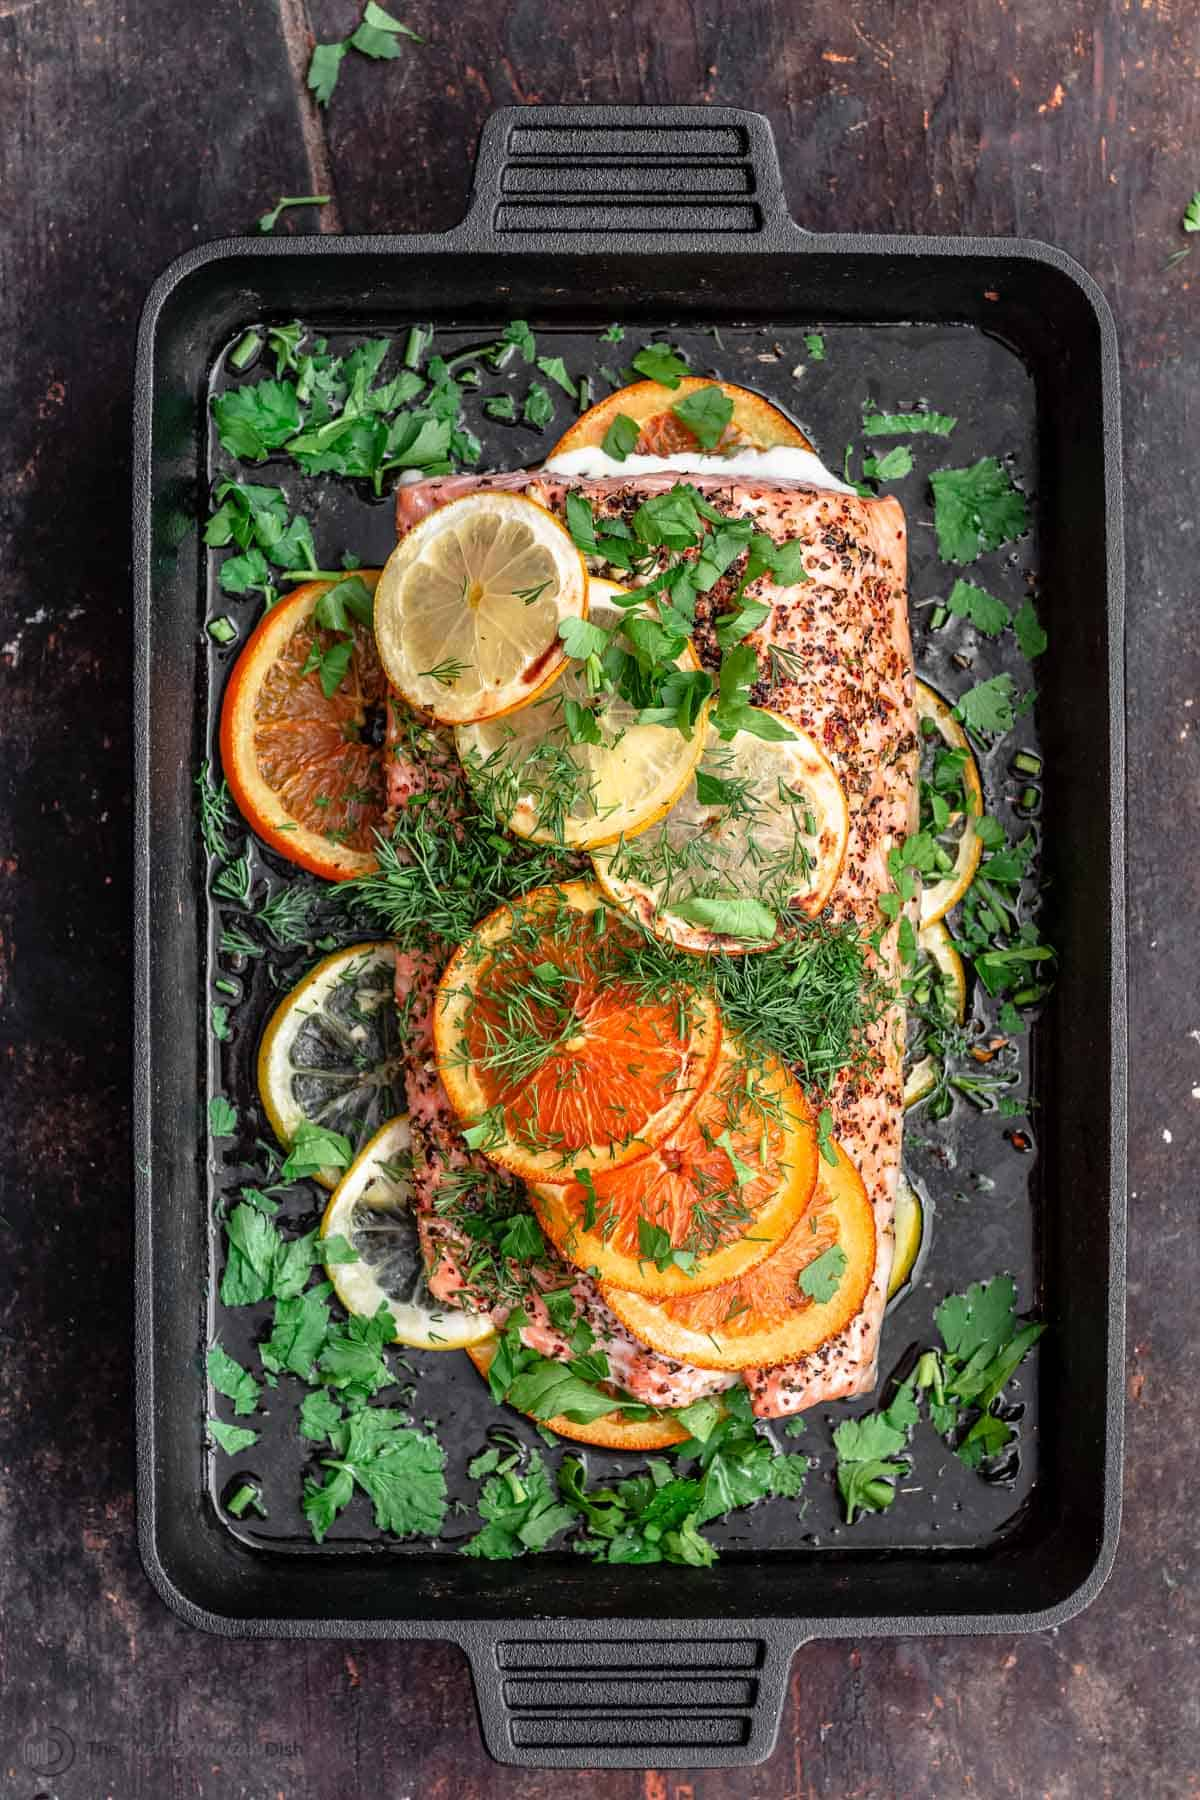 Fillet of salmon in skillet with slices of oranges and lemons